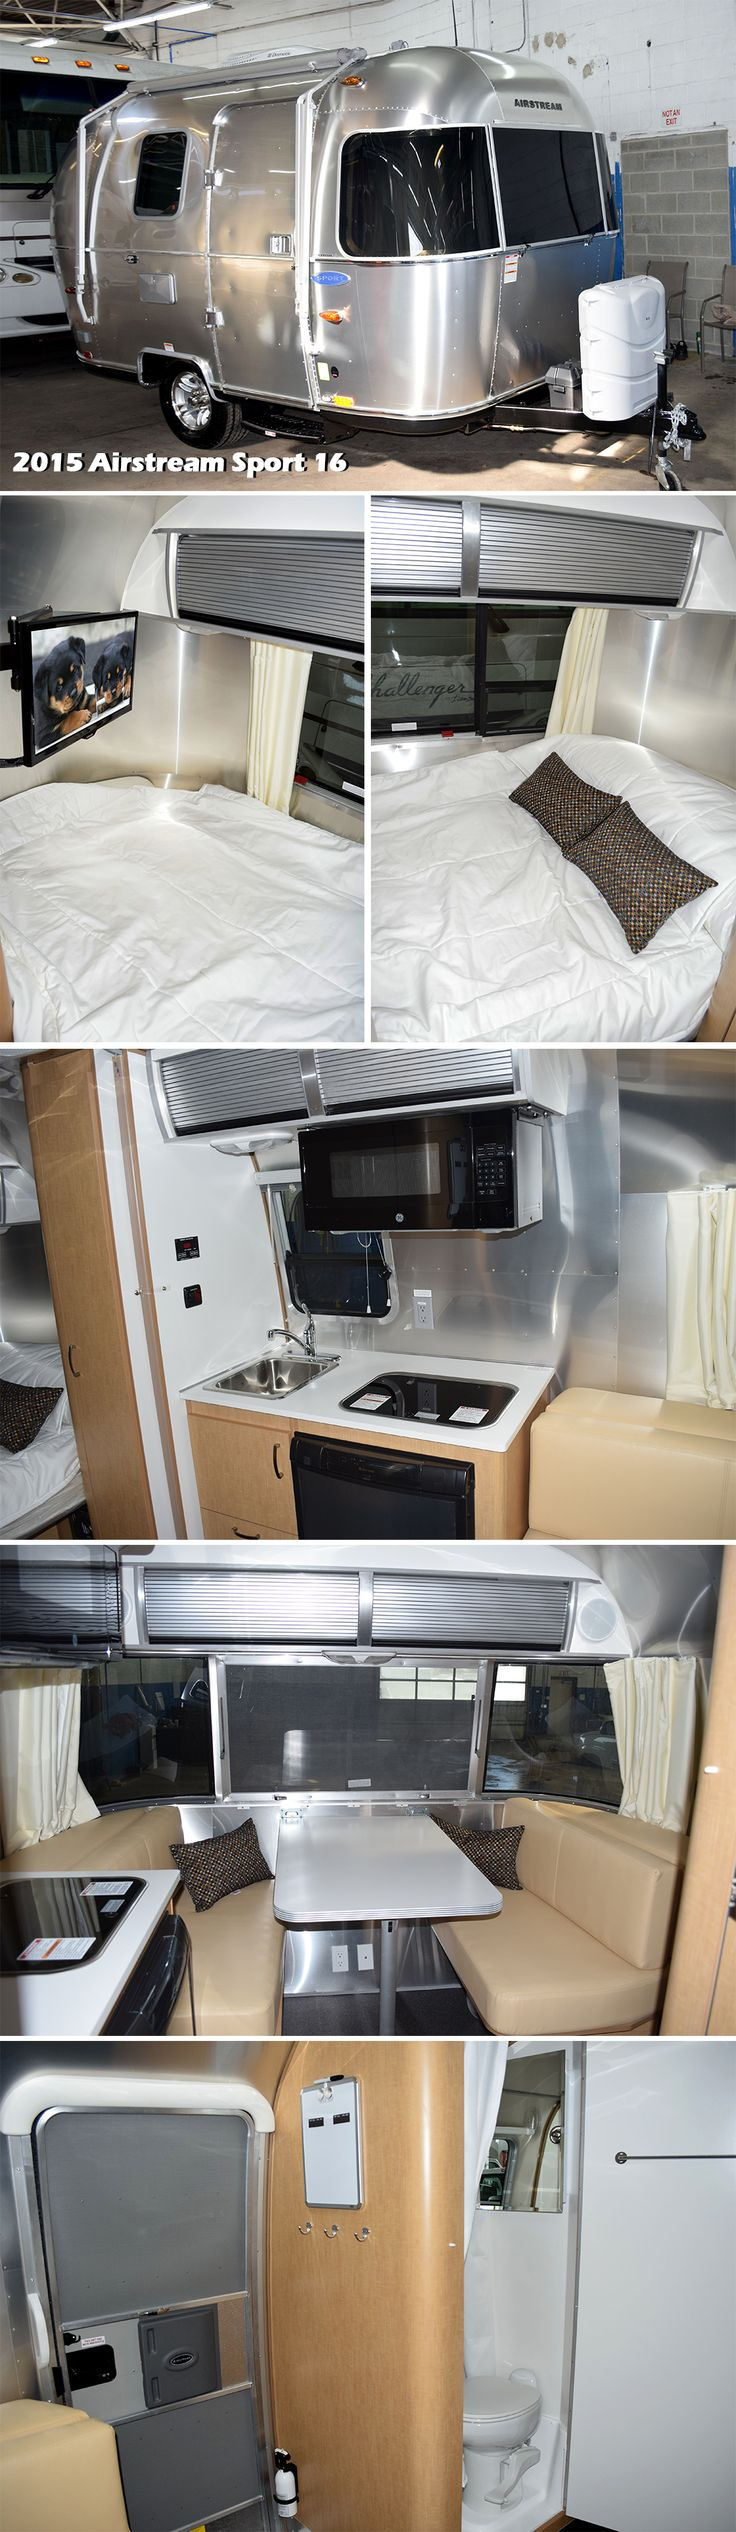 2015 airstream sport 16 travel trailer the airstream sport is an ultra towable